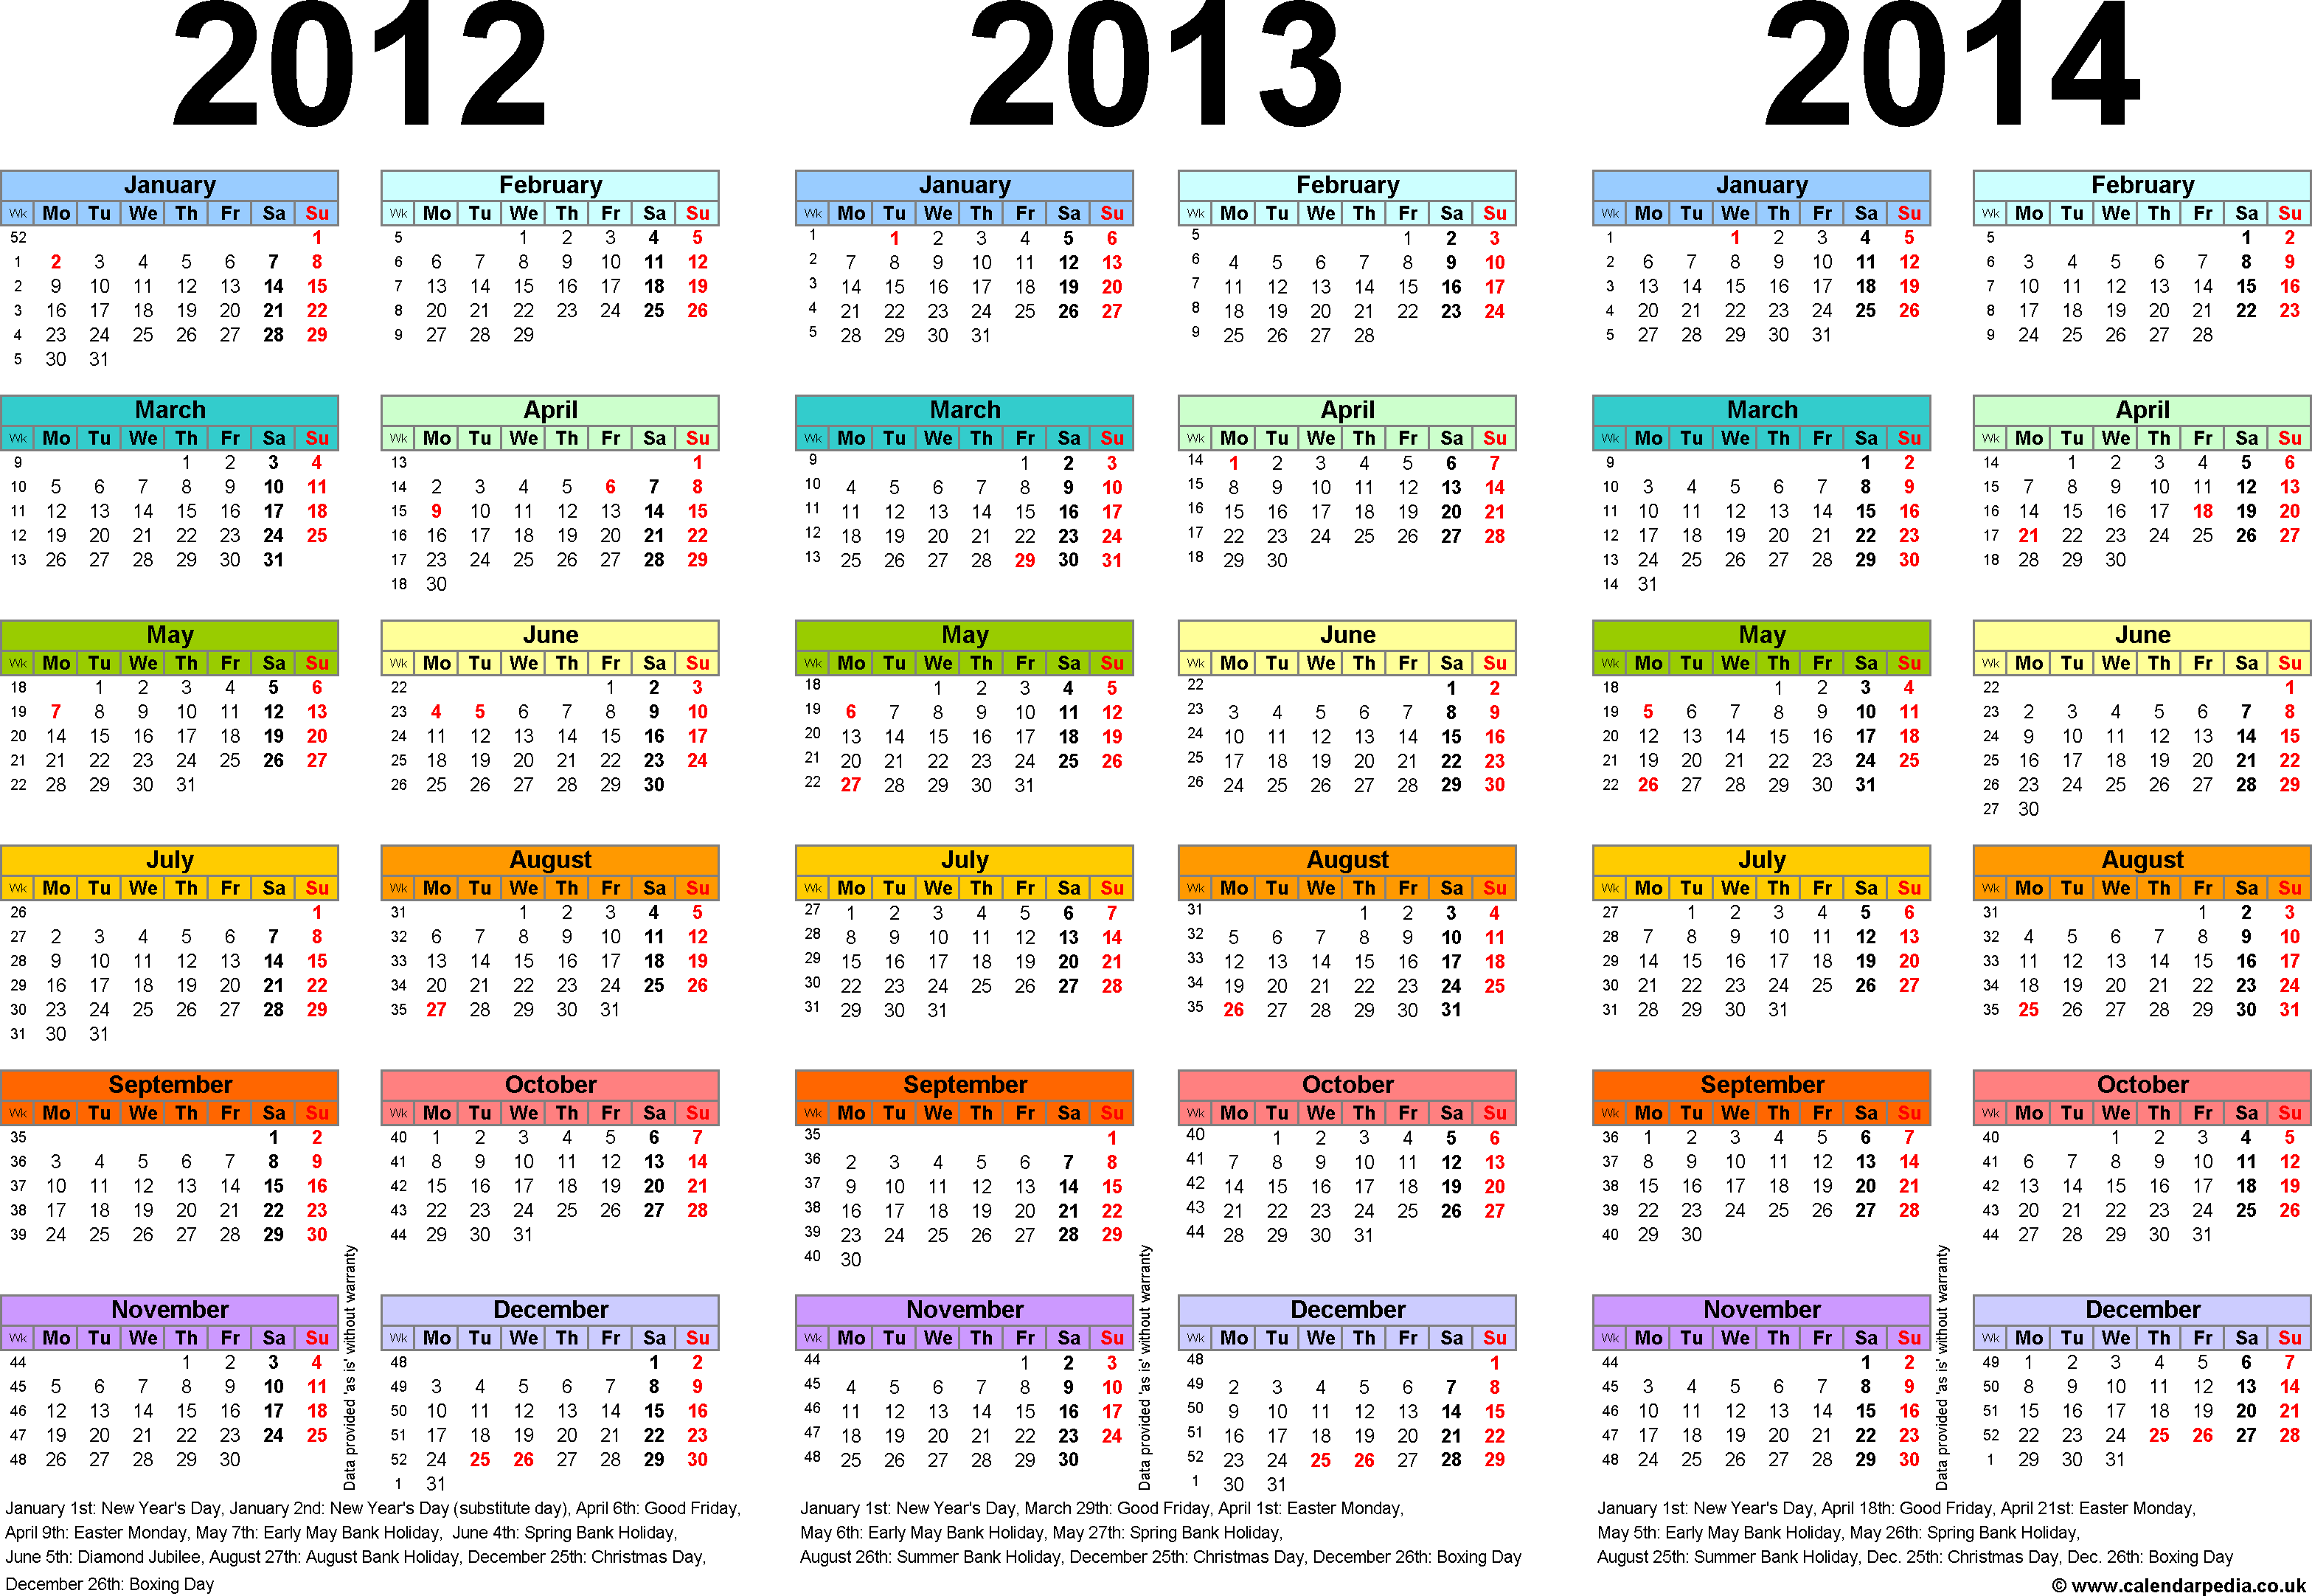 Template 1: Excel template for three year calendar 2012-2014 in colour (landscape orientation, 1 page, A4)